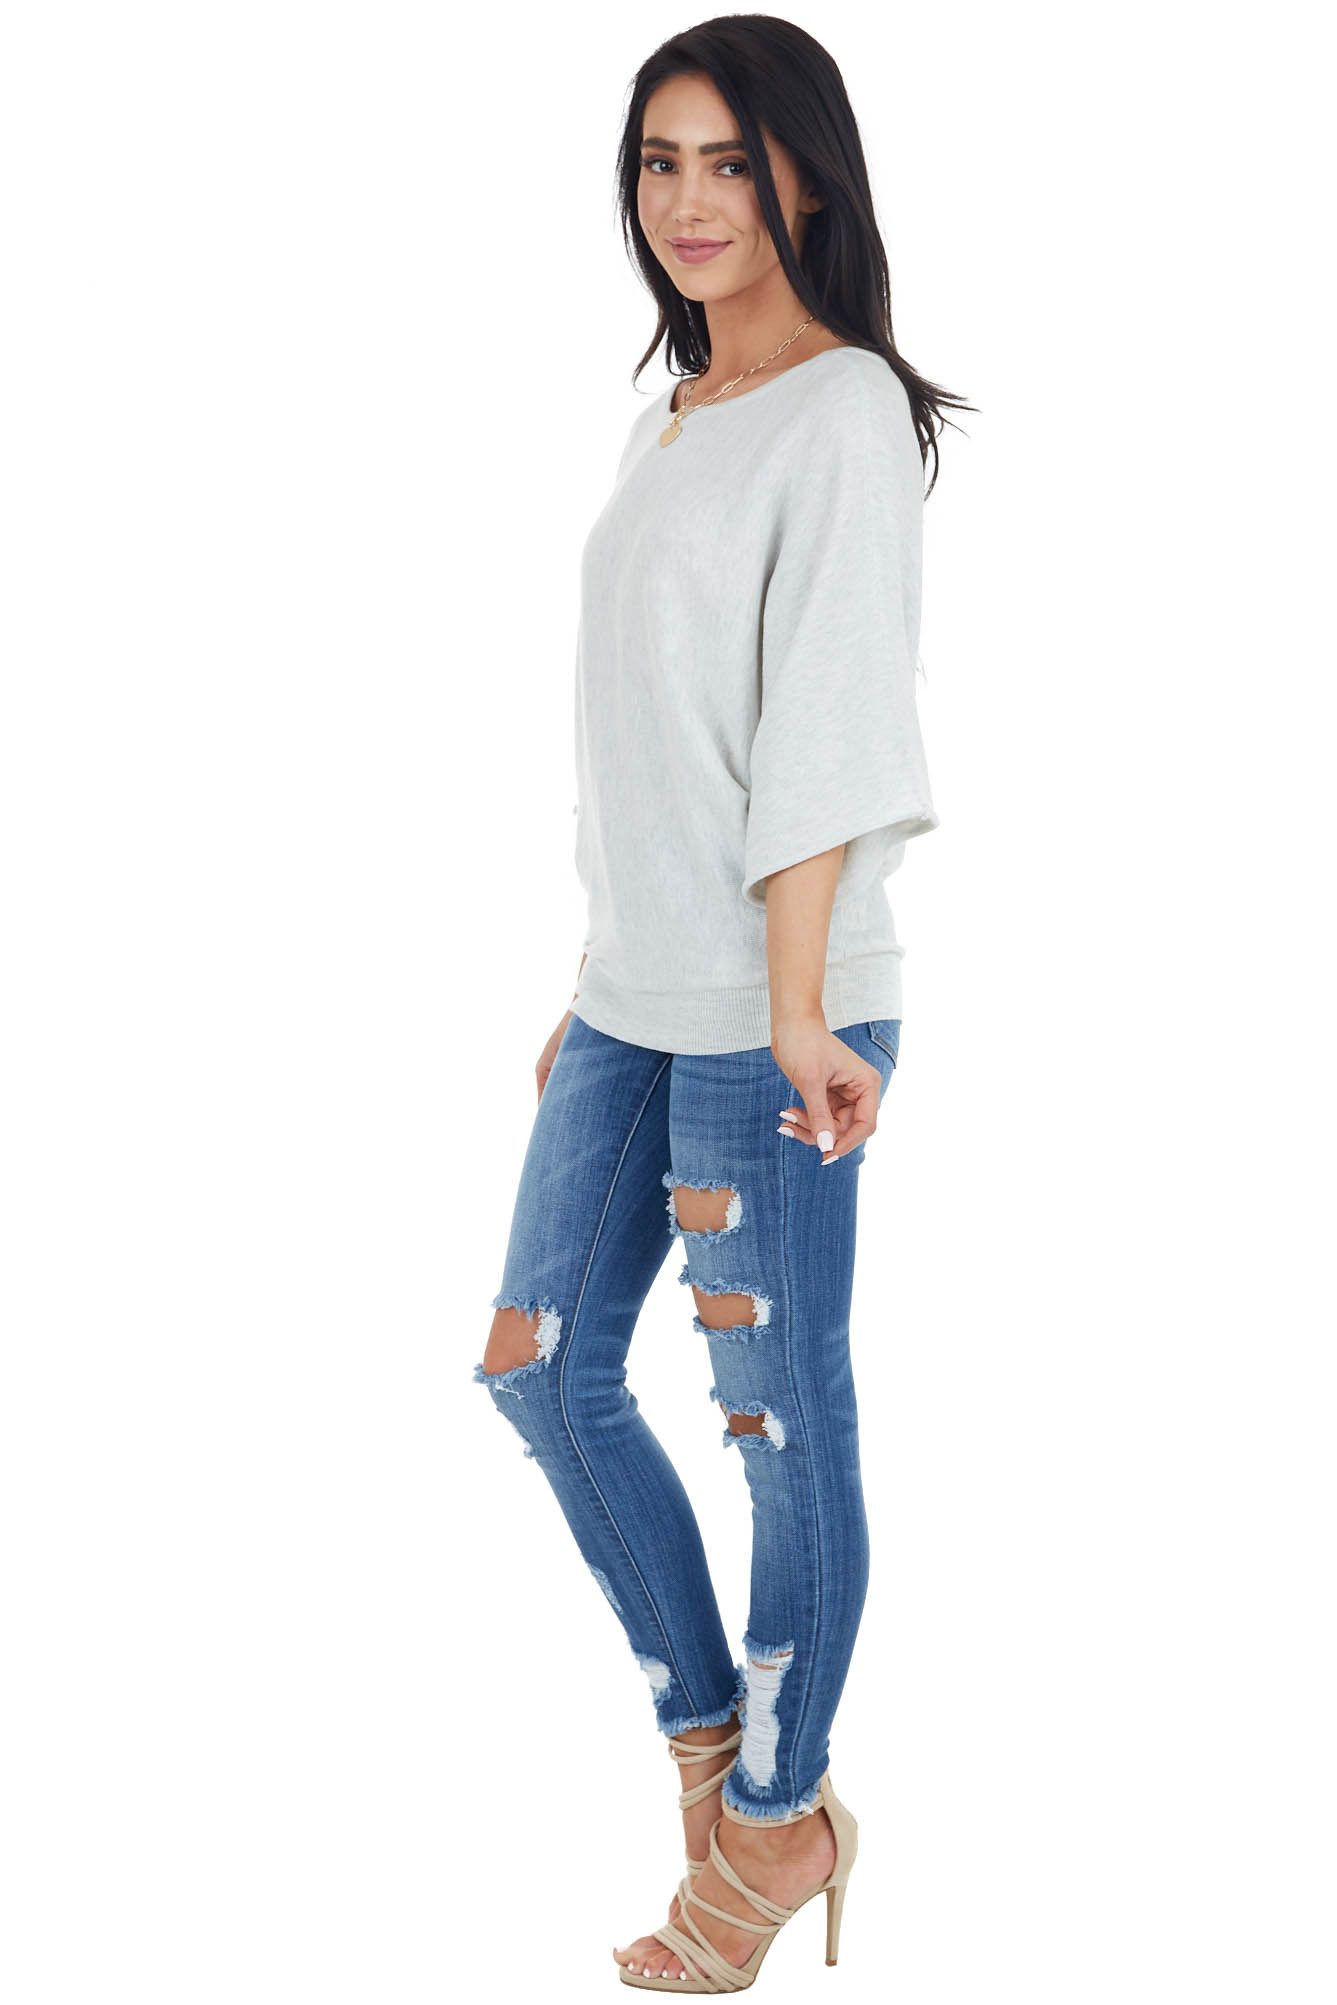 Dove Grey 3/4 Dolman Sleeve Knit Top with Boat Neckline